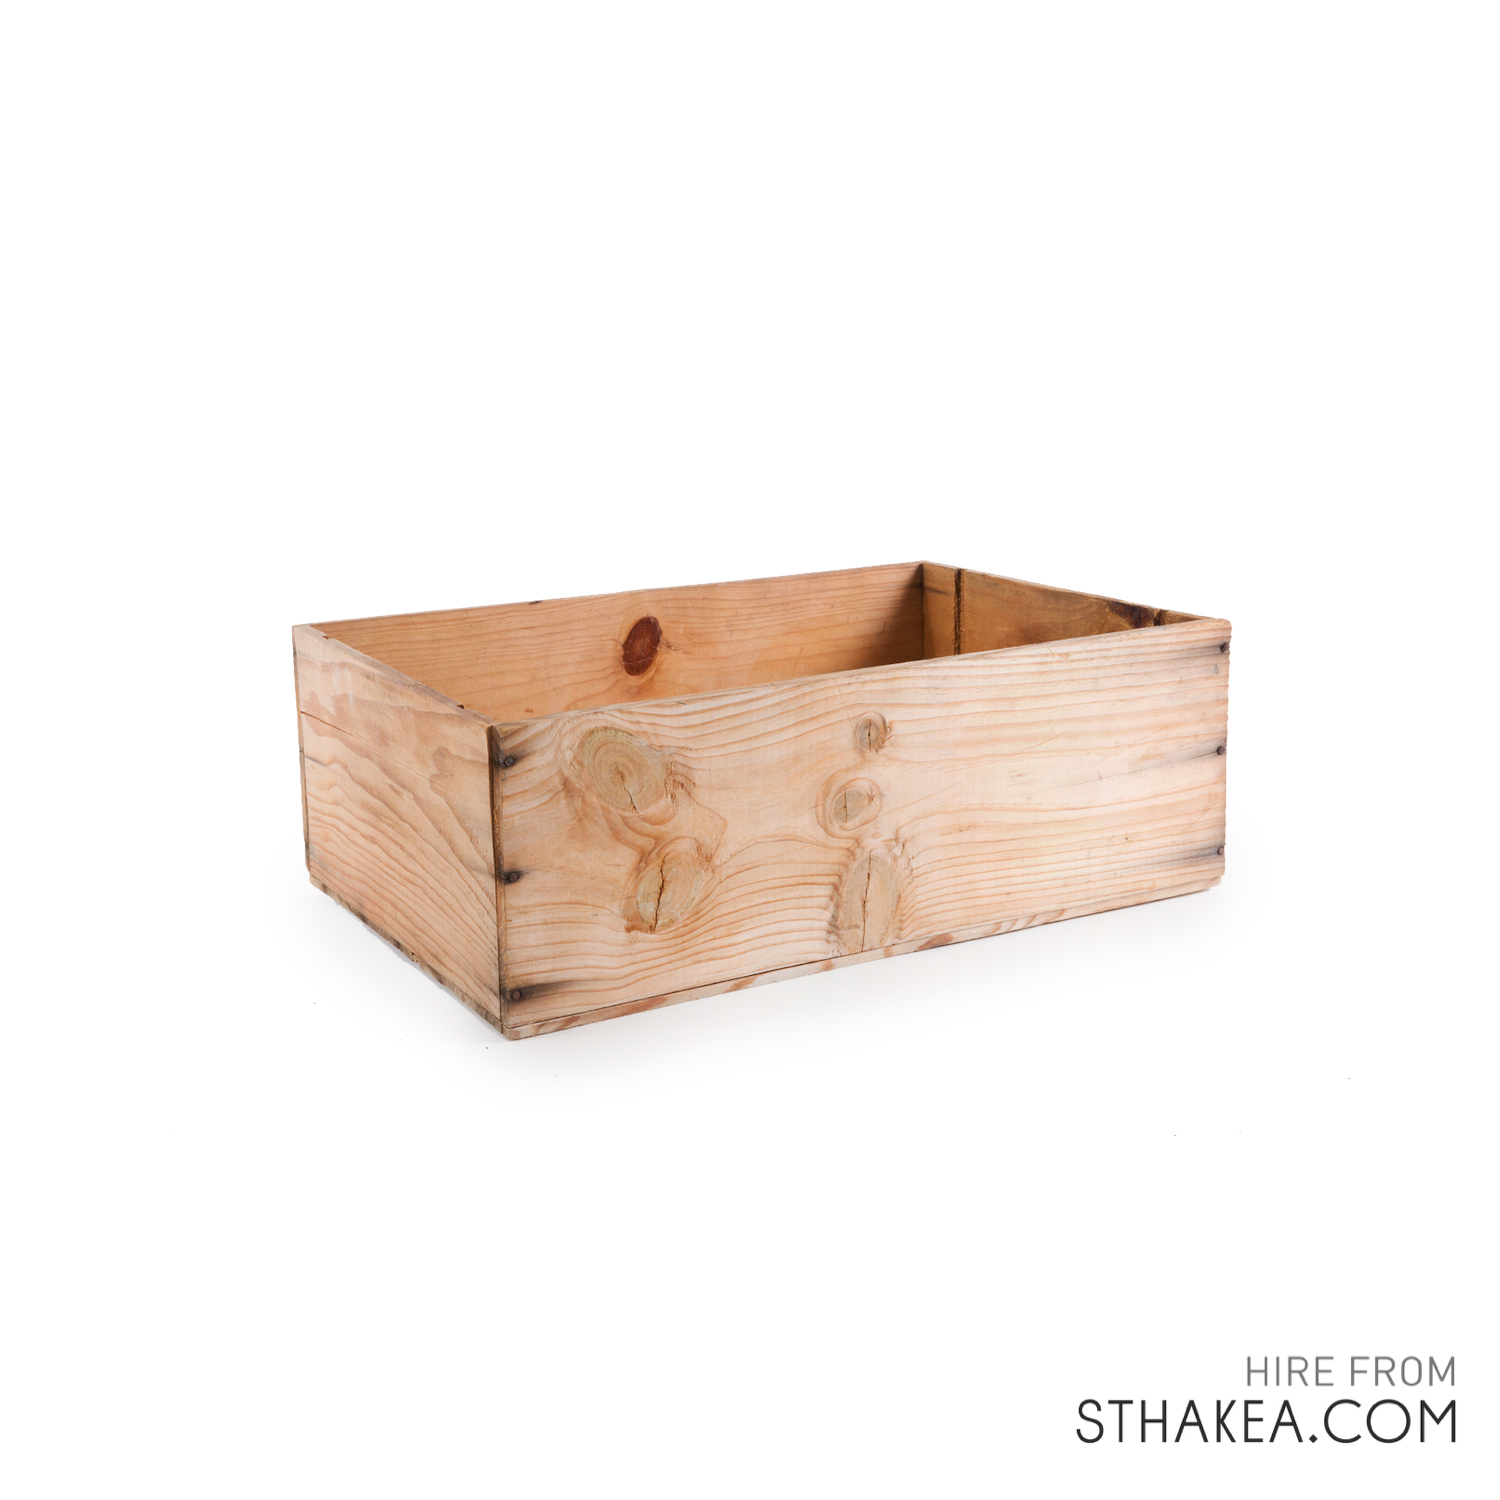 St Hakea Melbourne Event Hire Timber Crate.jpg